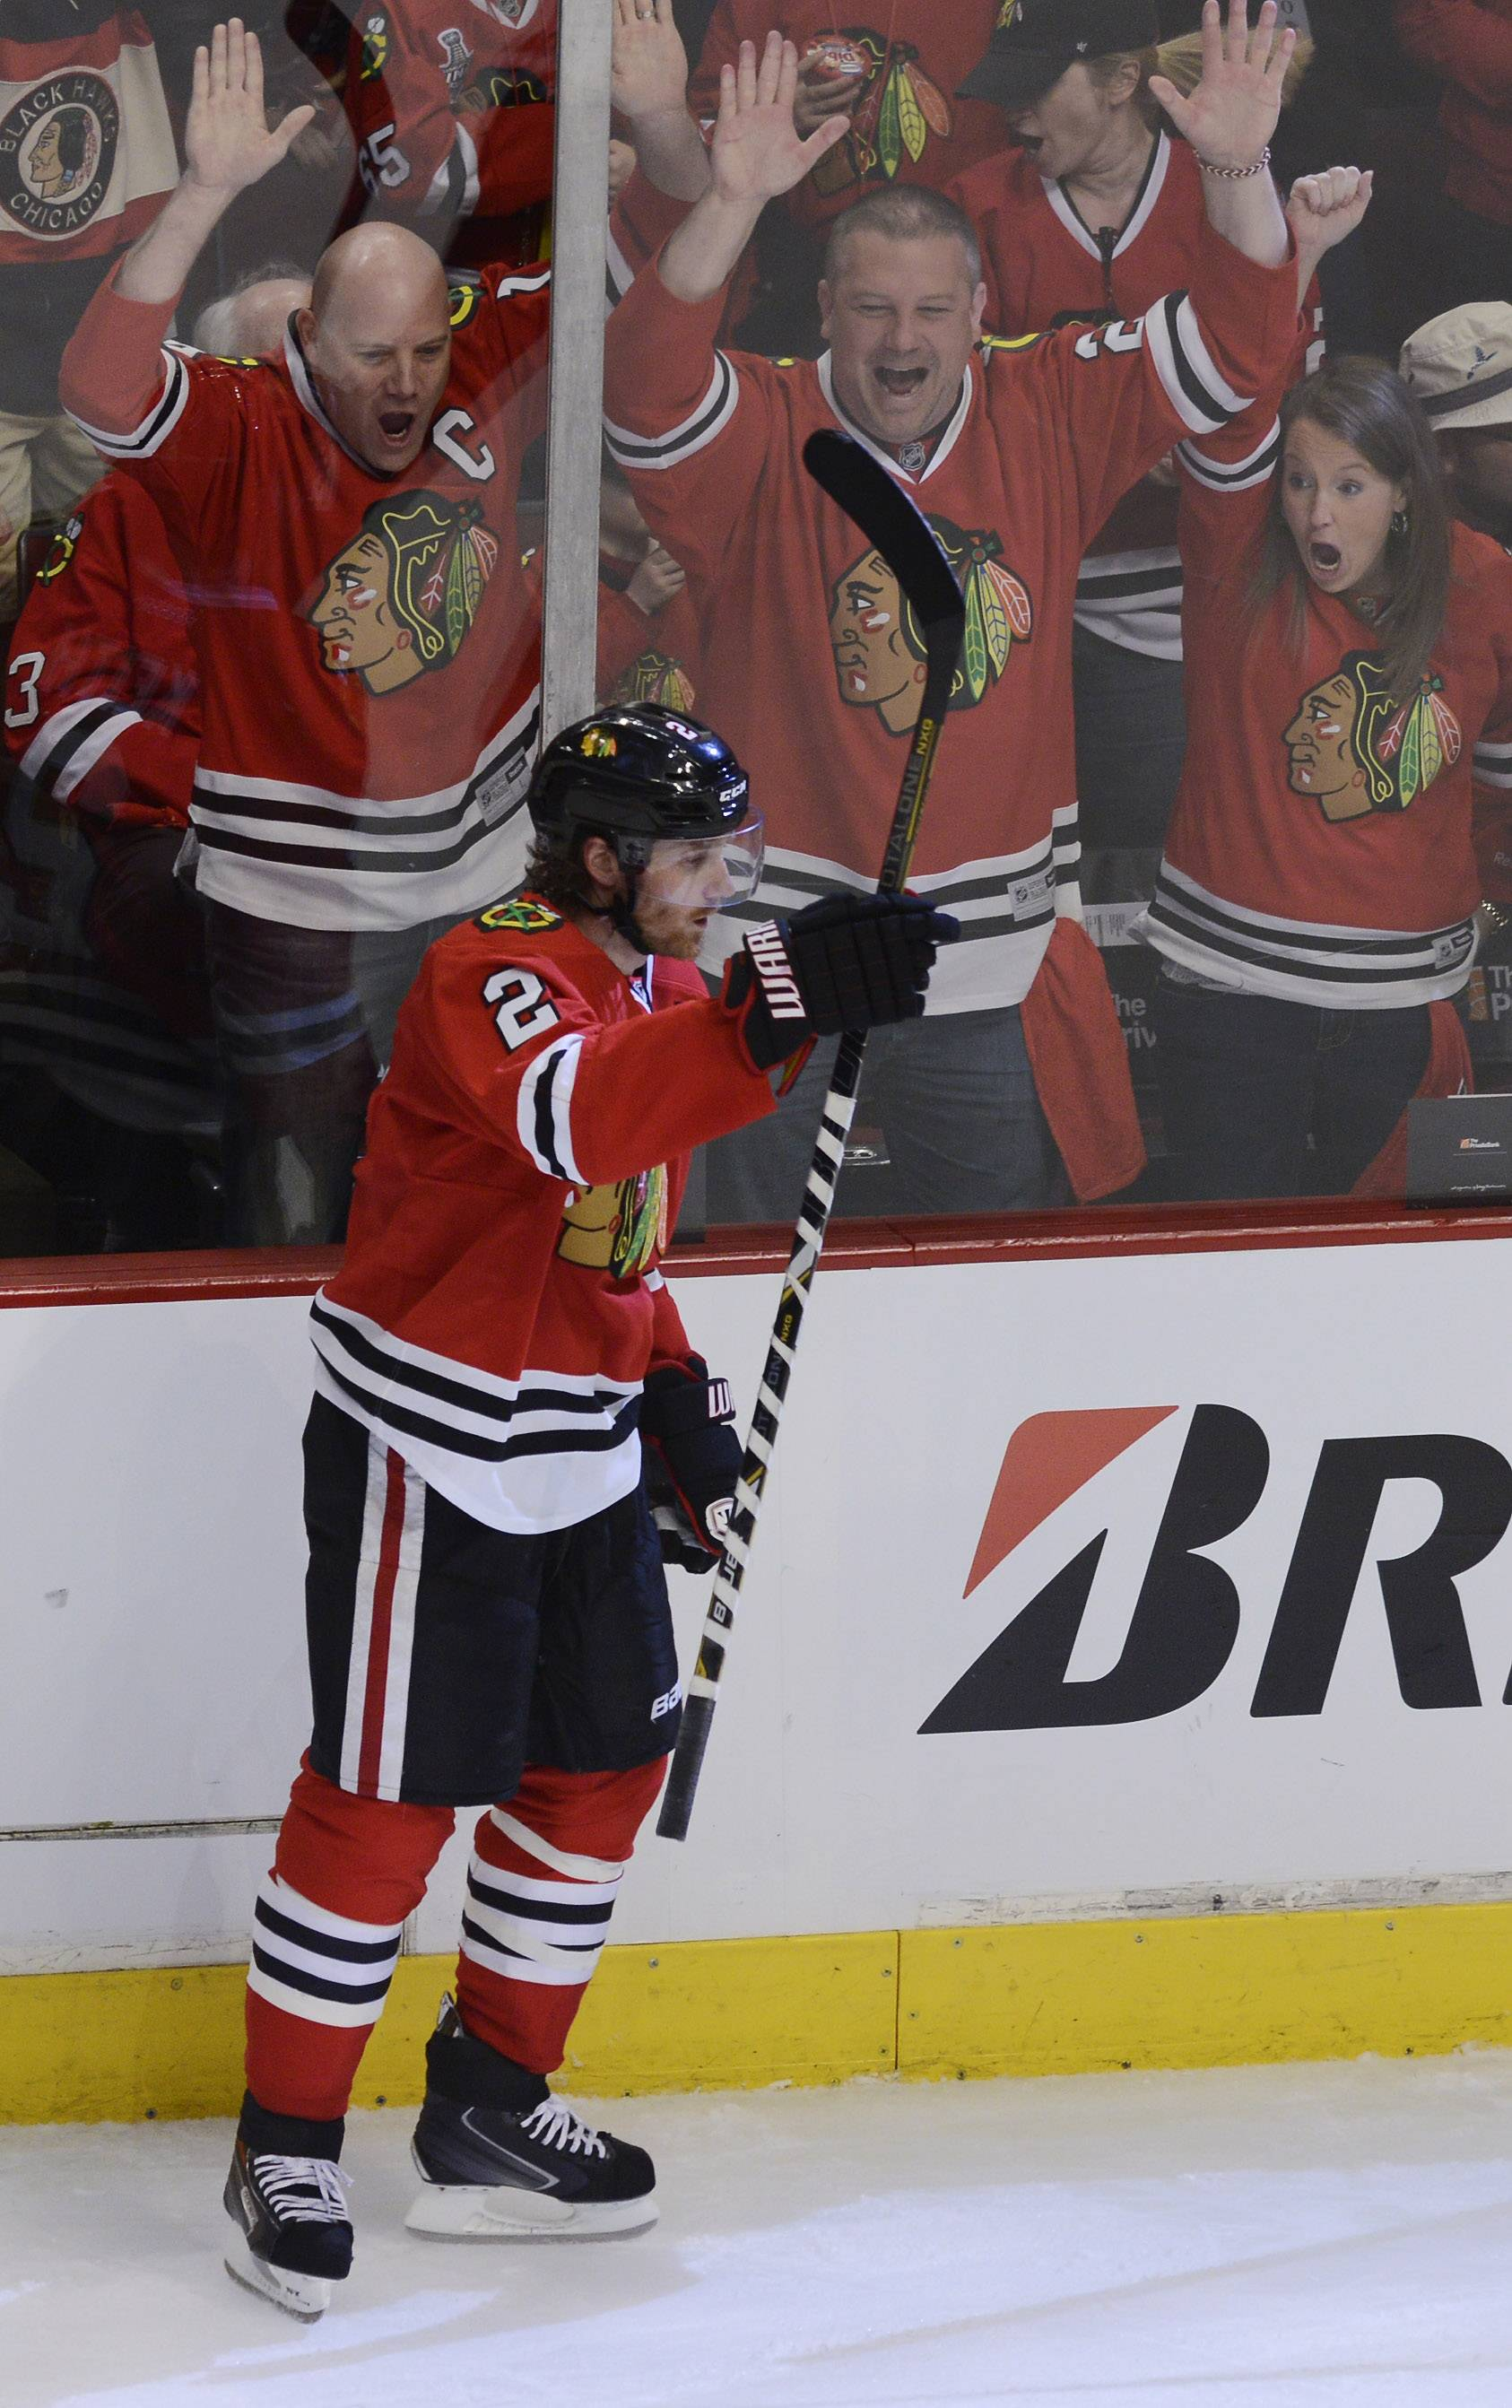 Chicago Blackhawks defenseman Duncan Keith raises his stick in the air as fans celebrate his second period goal during Sunday's game against the Los Angeles Kings at the United Center in Chicago.